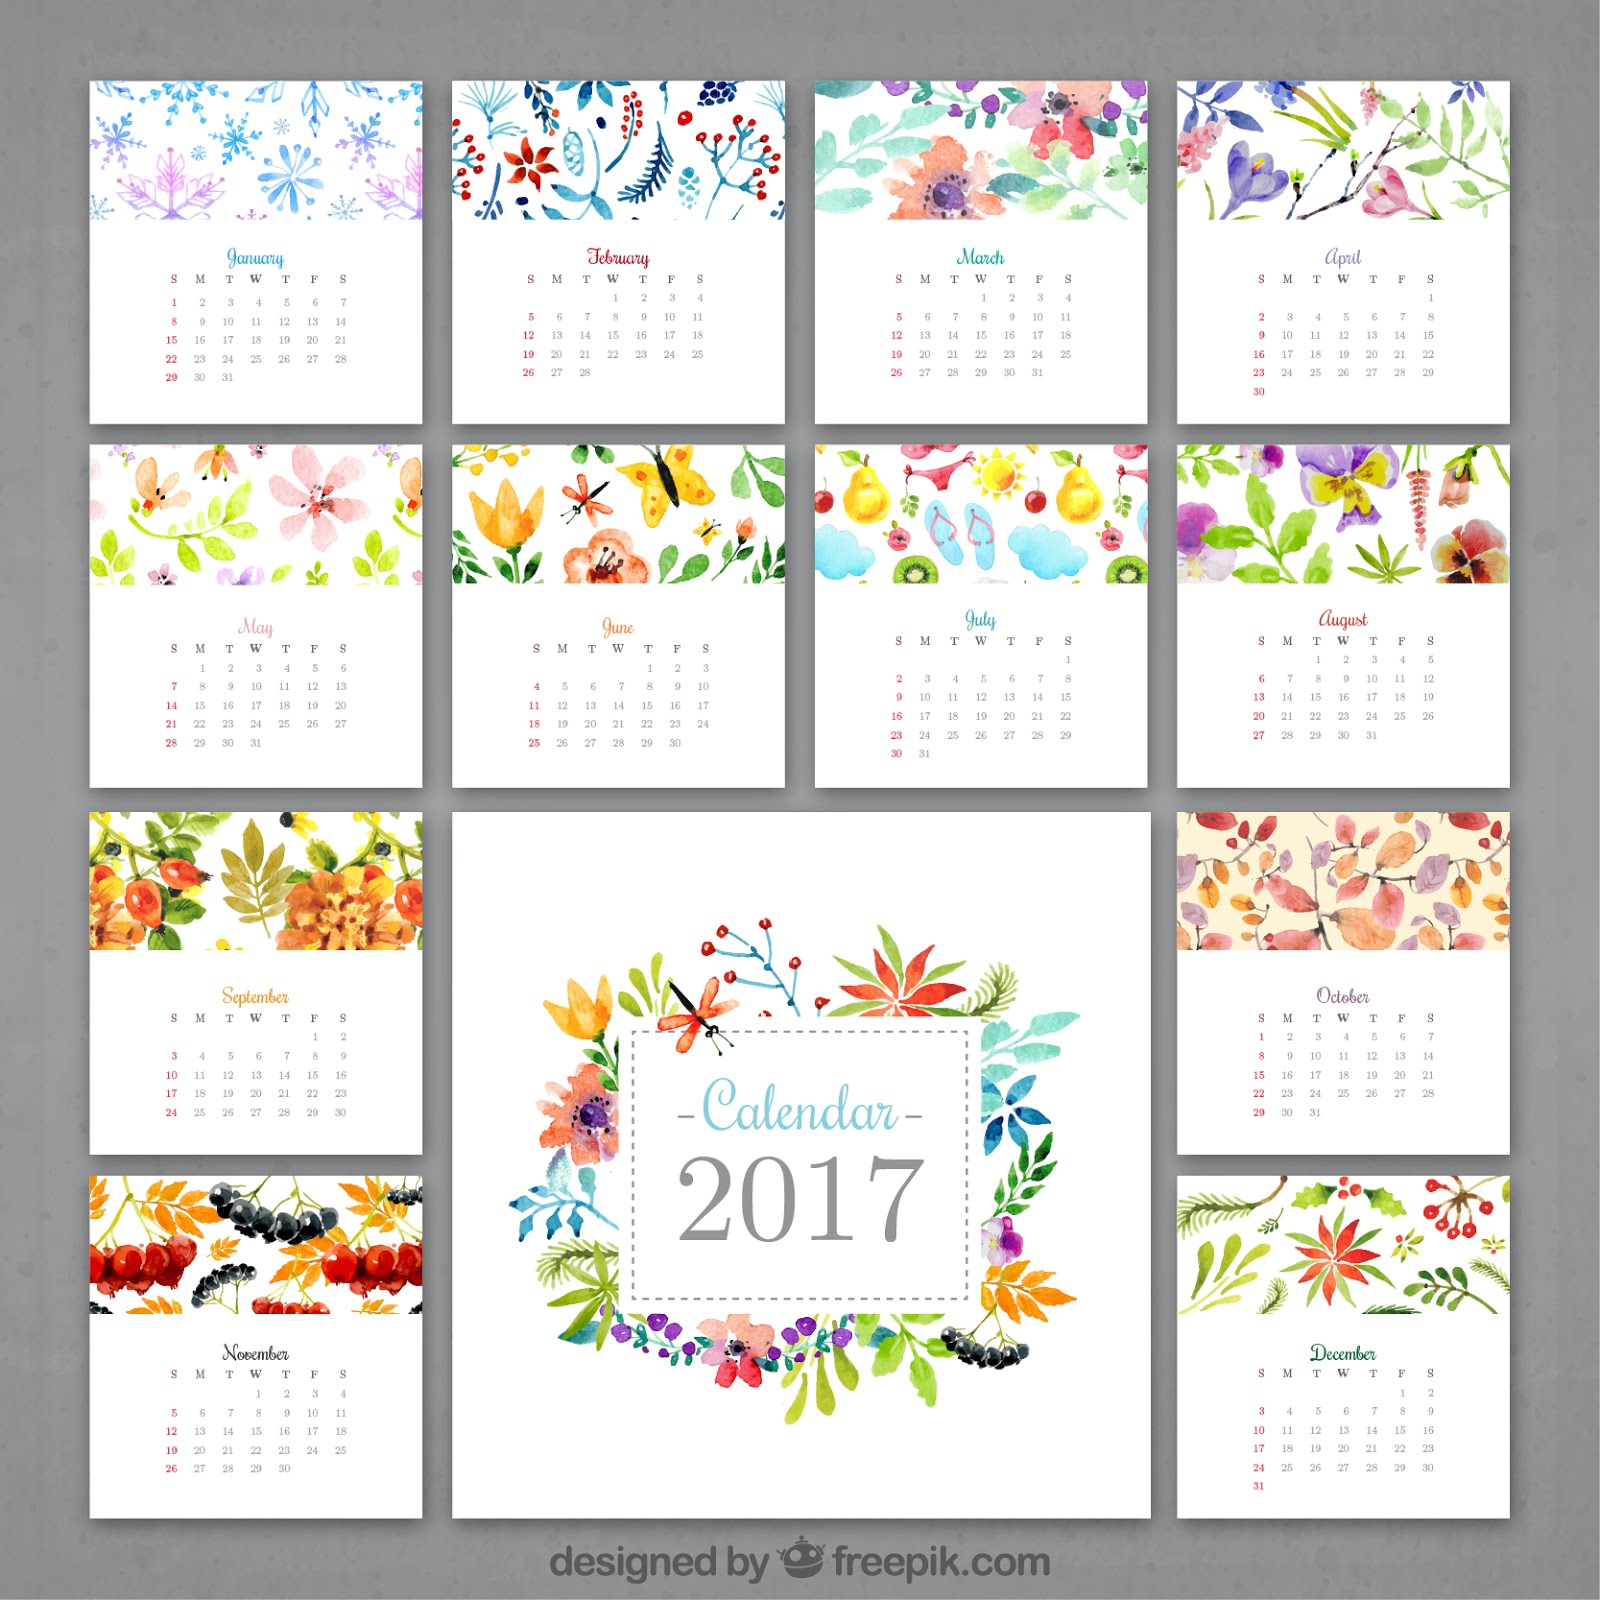 Baby Calendar Design : Calendar vector free download new template